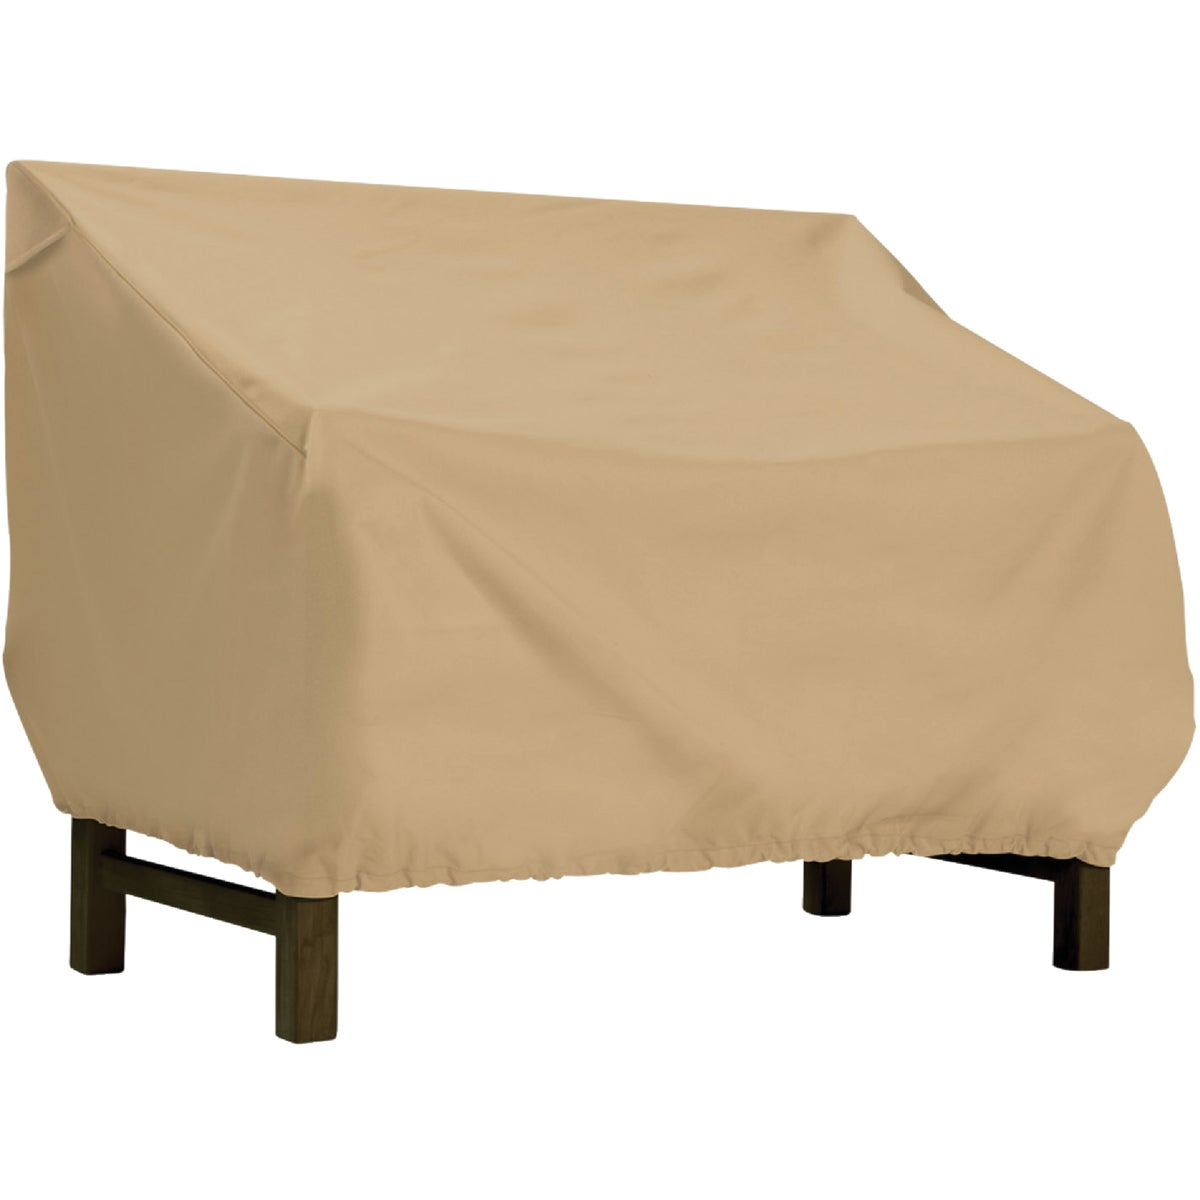 2-SEAT LOVESEAT COVER